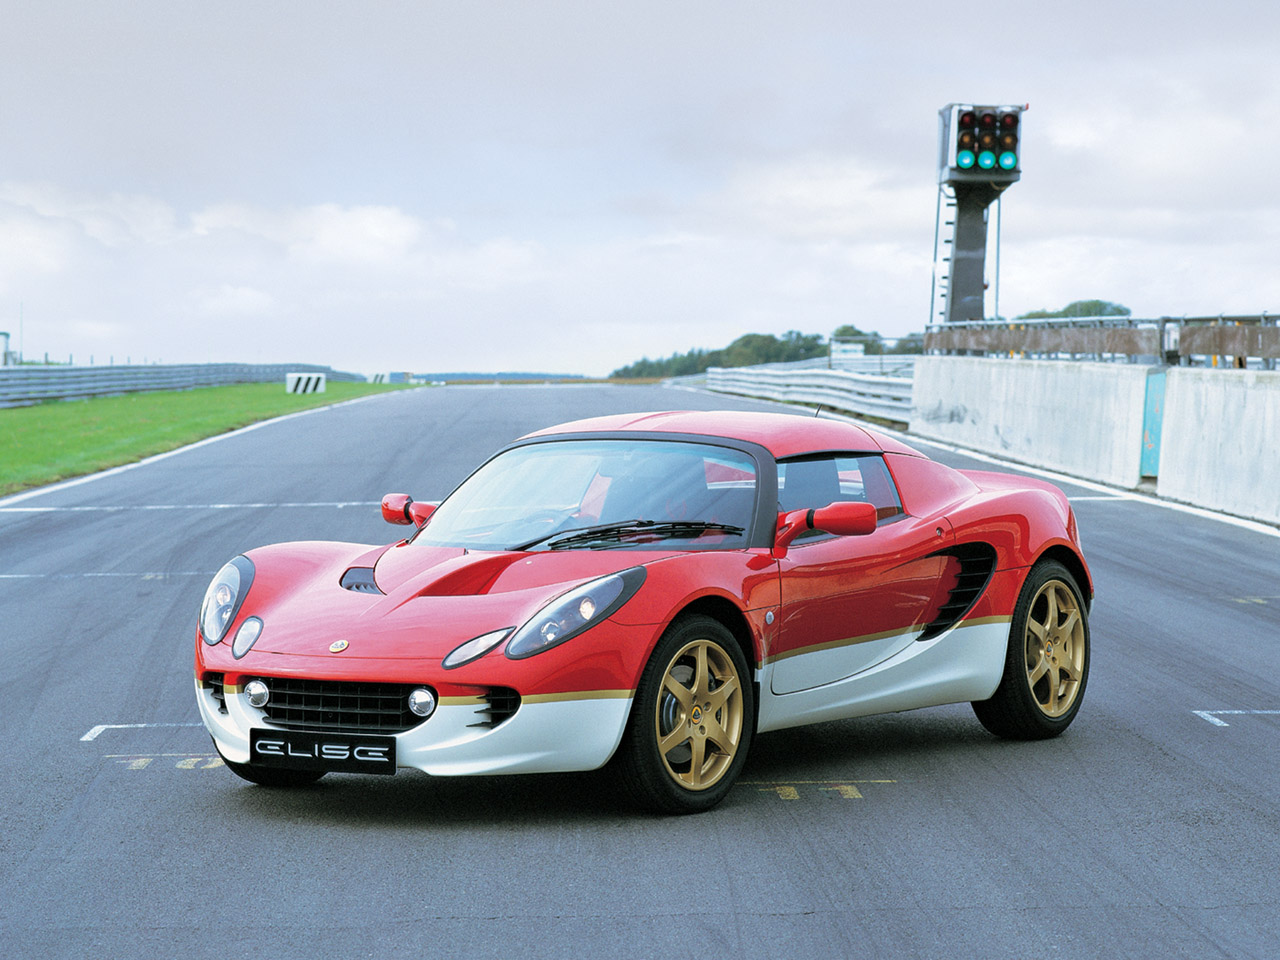 lotus elise 111s type 49 specs photos videos and more on topworldauto. Black Bedroom Furniture Sets. Home Design Ideas